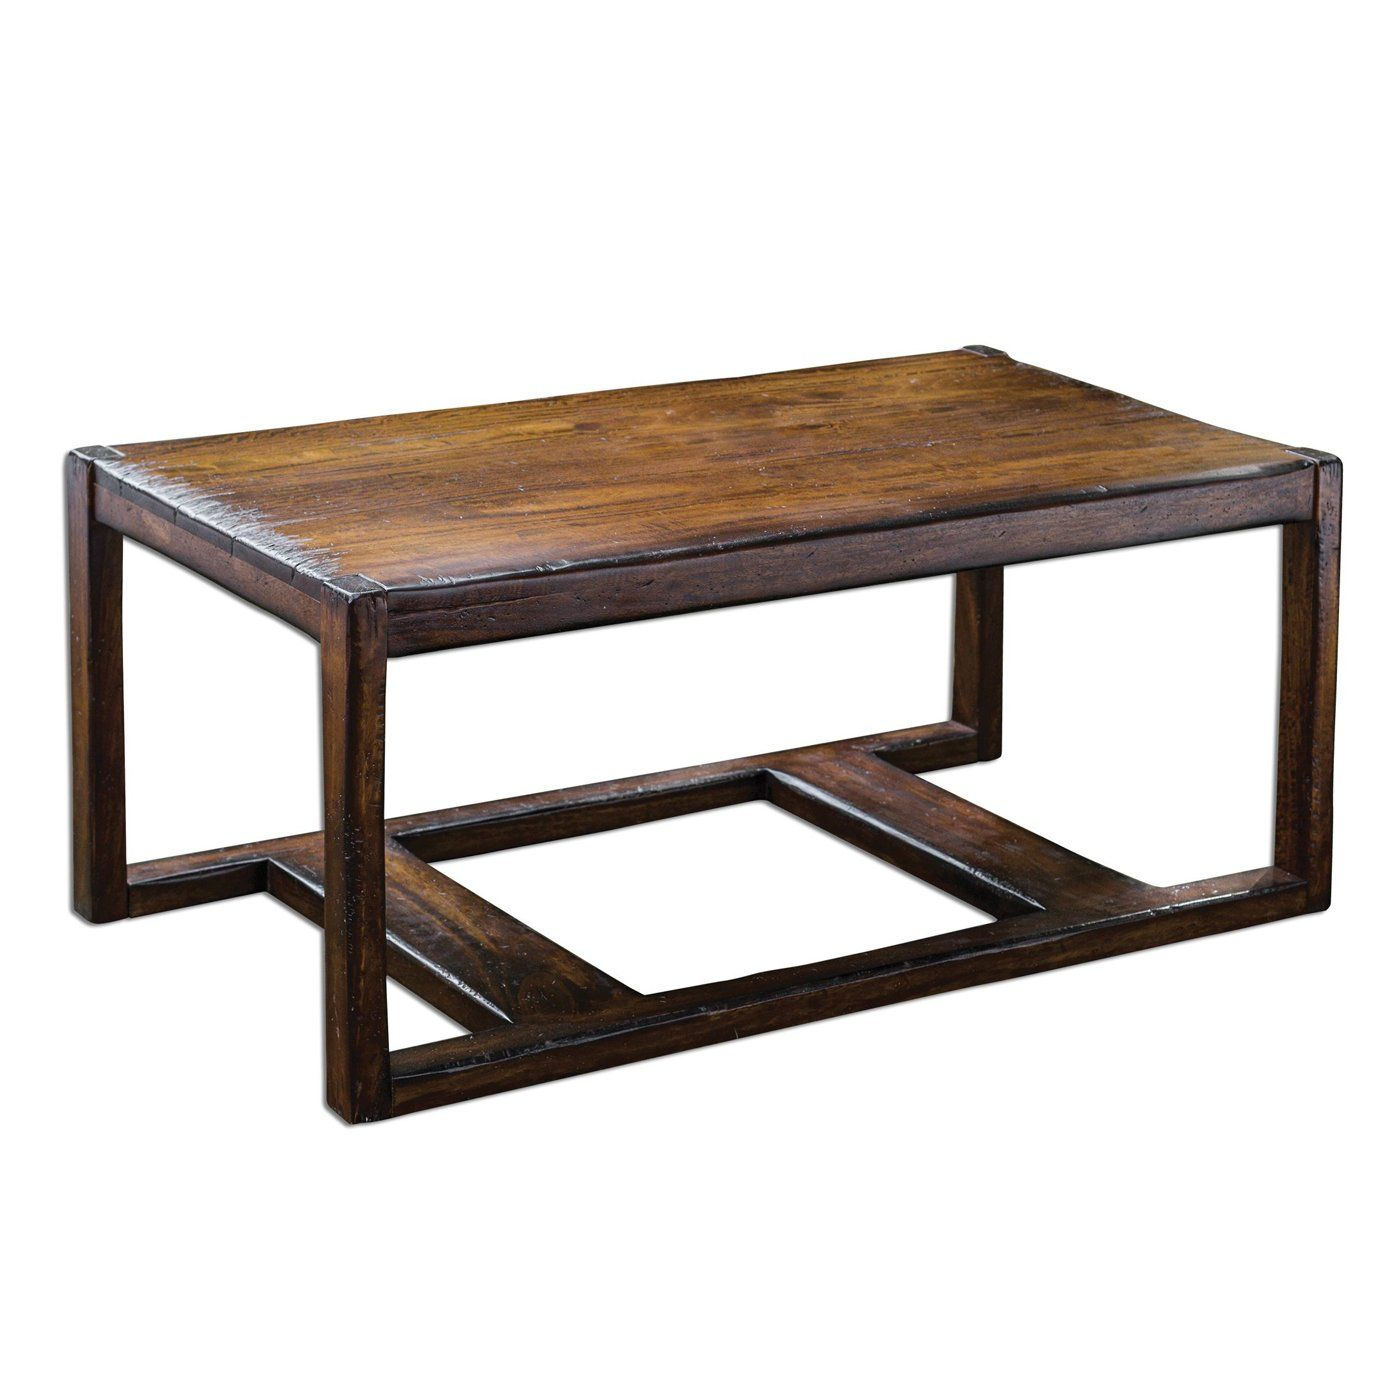 Shop Uttermost 25605 Deni Wooden Coffee Table At Atg Stores Browse Our Coffee Tables All With Wood Coffee Table Rustic Coffee Table Wood Wooden Coffee Table [ 1400 x 1400 Pixel ]